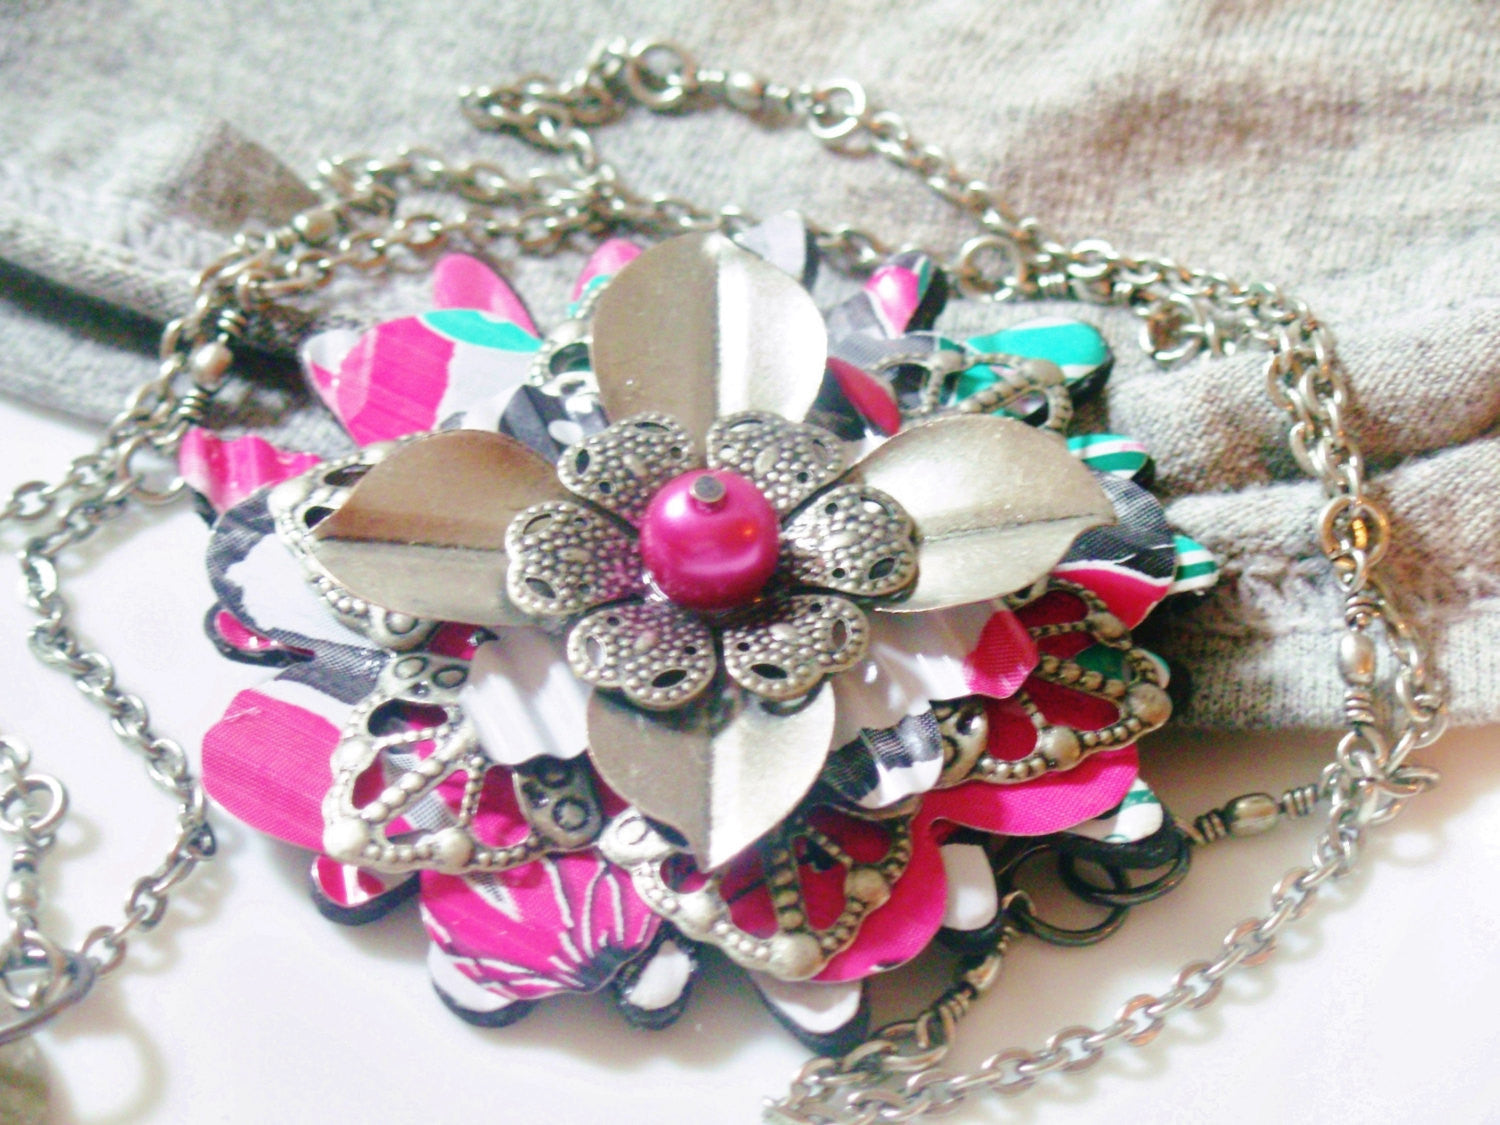 Arizona Tea Large Flower Pendant Necklace - Recycled